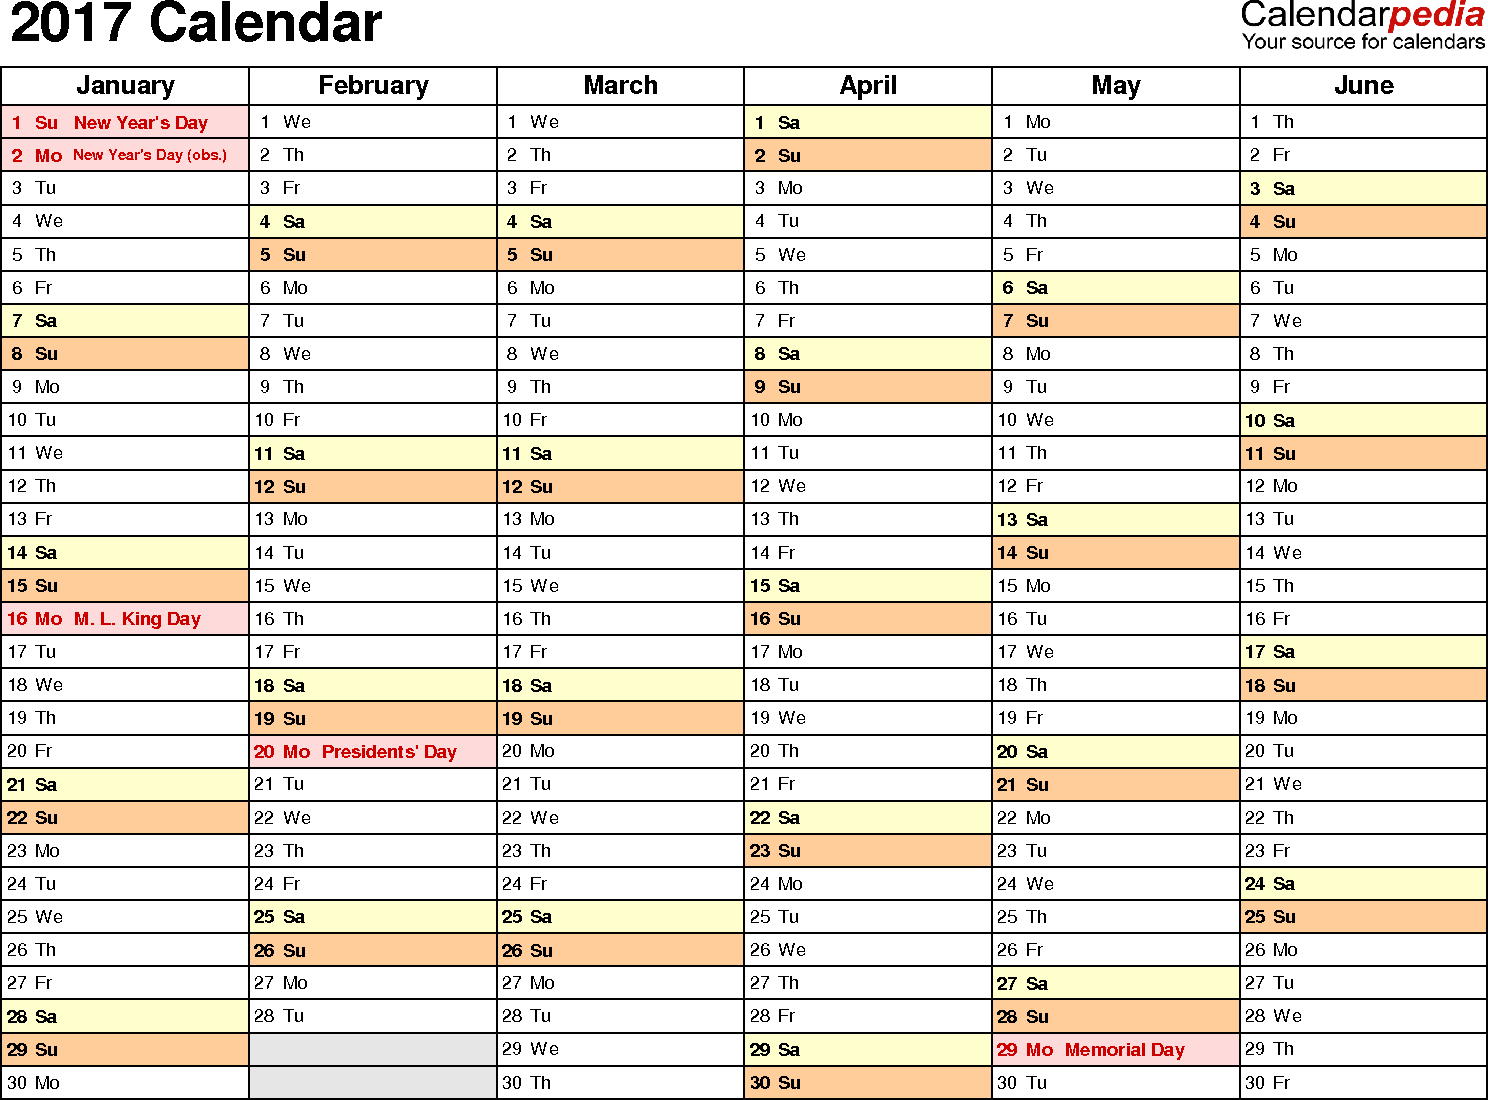 Ediblewildsus  Inspiring  Calendar  Download  Free Printable Excel Templates Xls With Excellent Template   Calendar For Excel Months Horizontally  Pages Landscape Orientation With Adorable Sort Excel Alphabetically Also How To Work On Excel In Addition Chore Chart Template Excel And How To Create Flow Chart In Excel As Well As How To Do Percentages On Excel Additionally Vlookup In Excel For Dummies From Calendarpediacom With Ediblewildsus  Excellent  Calendar  Download  Free Printable Excel Templates Xls With Adorable Template   Calendar For Excel Months Horizontally  Pages Landscape Orientation And Inspiring Sort Excel Alphabetically Also How To Work On Excel In Addition Chore Chart Template Excel From Calendarpediacom